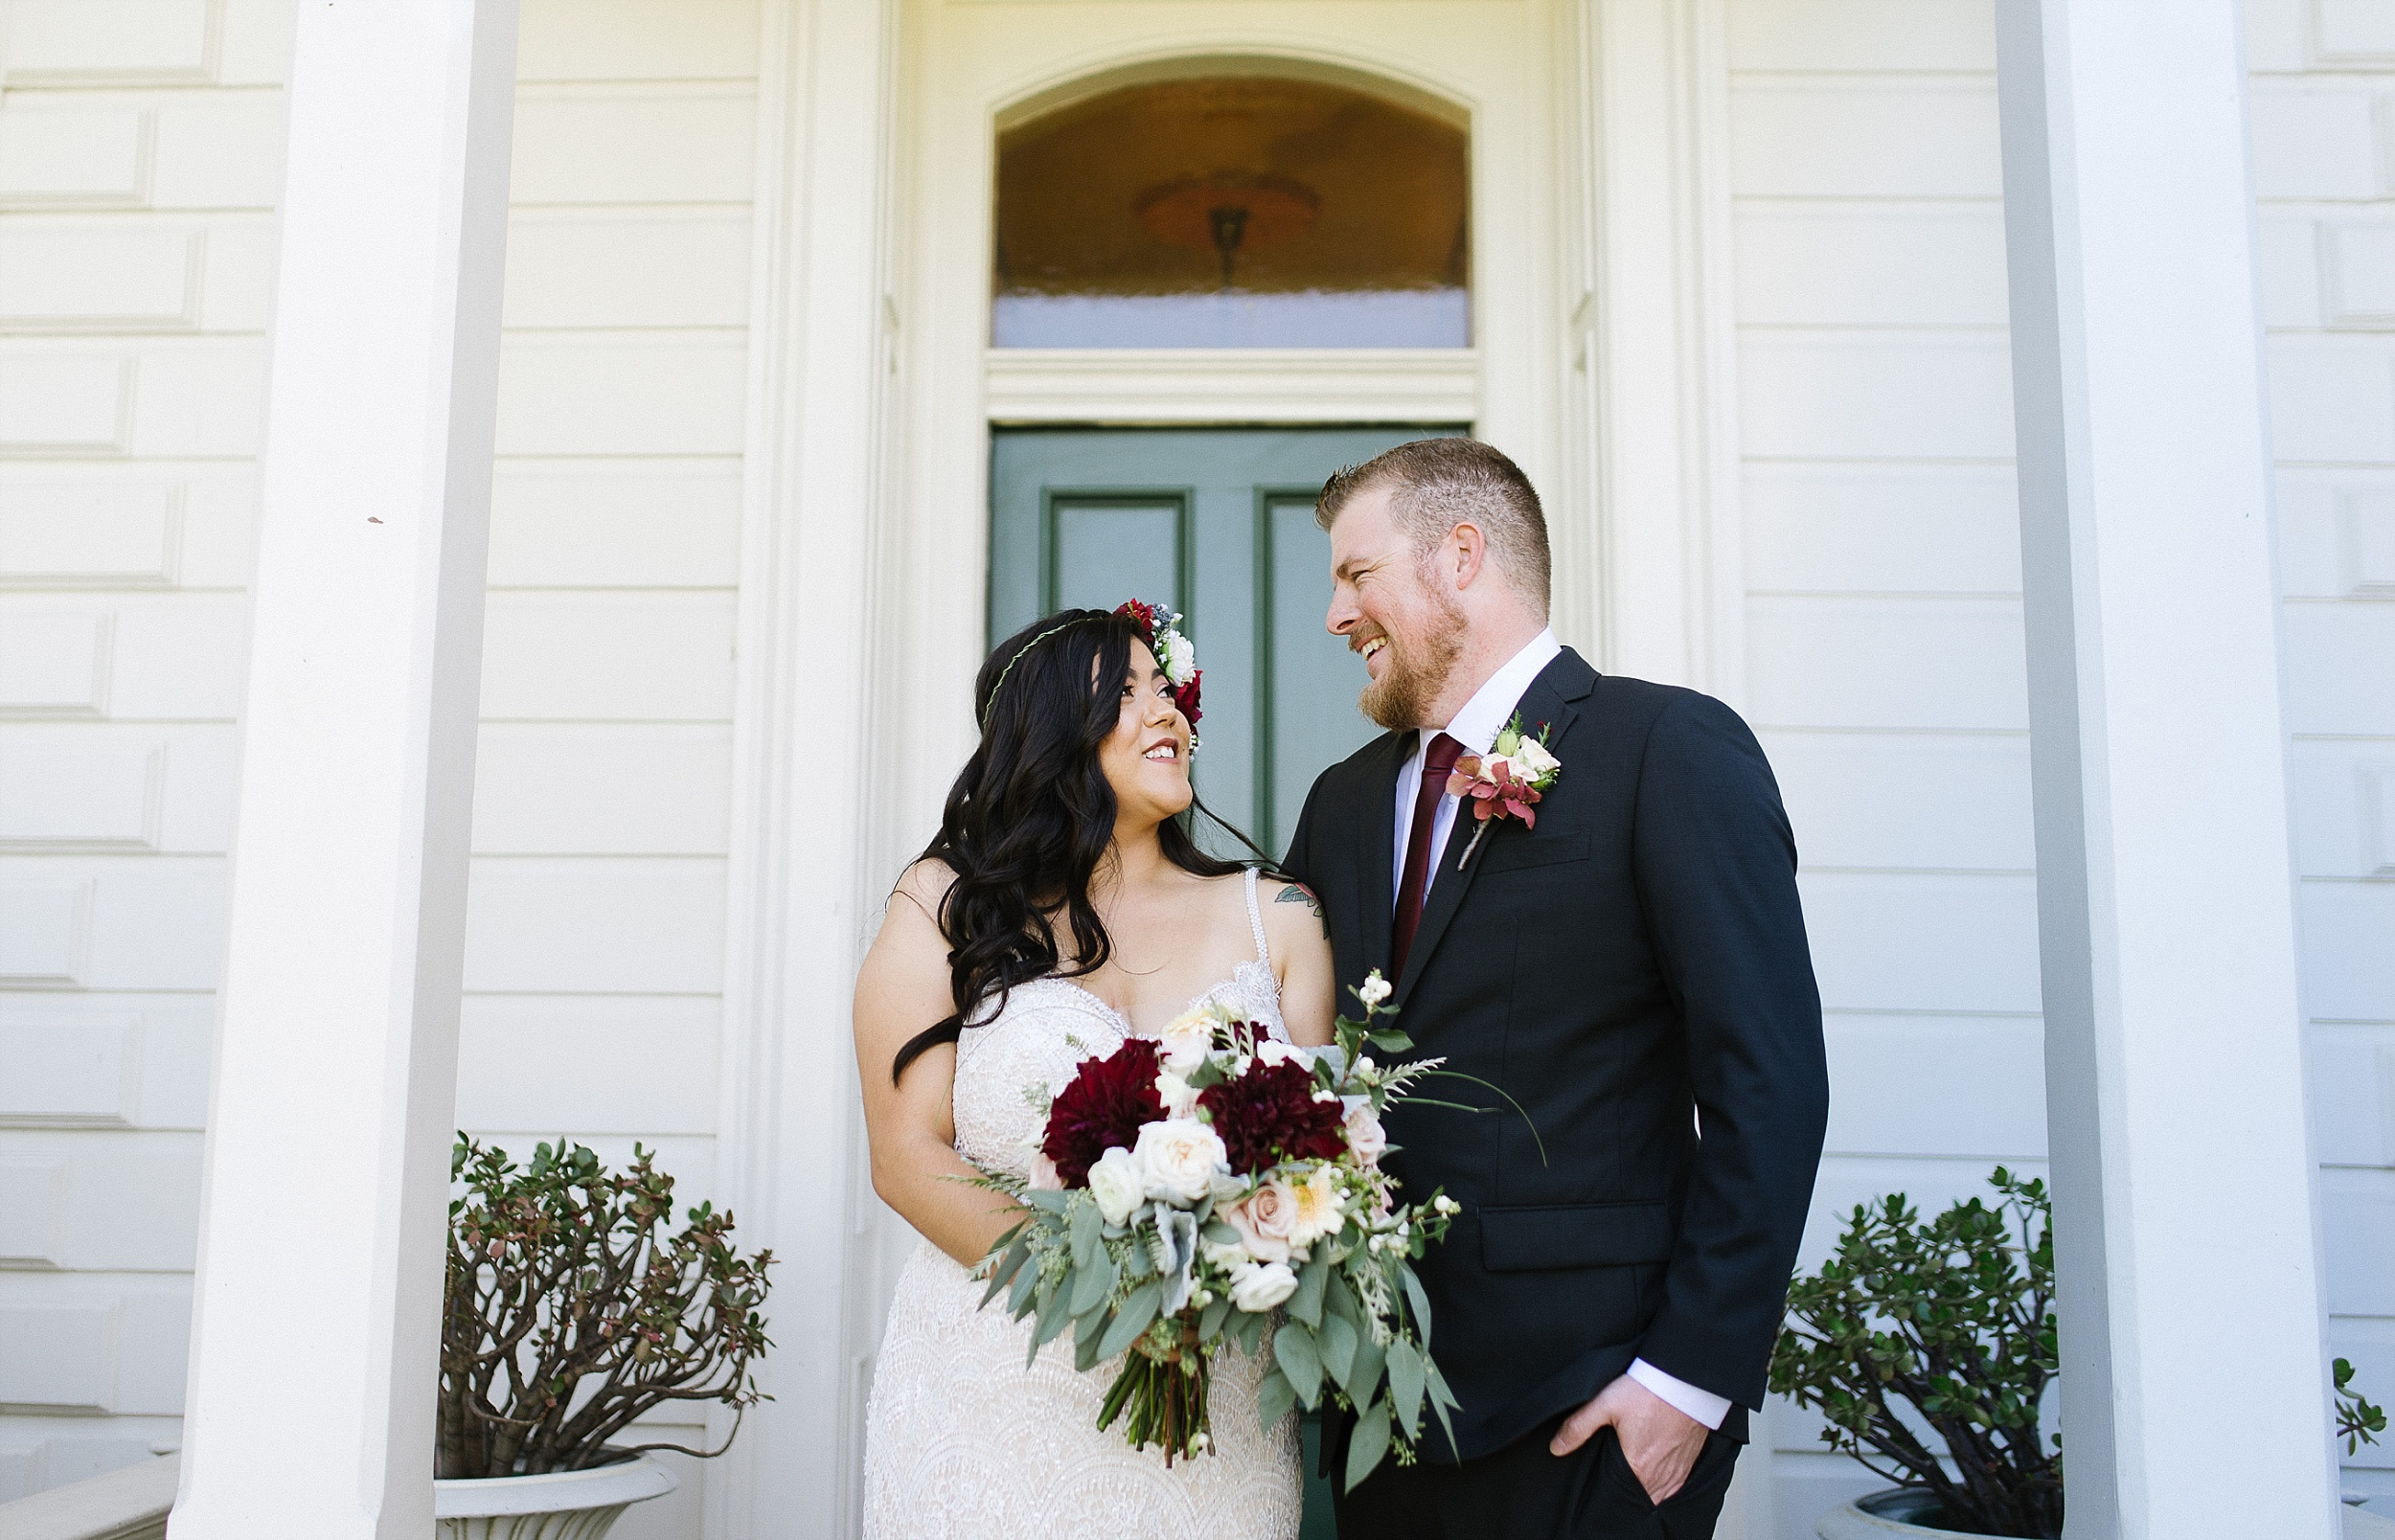 enissablake_Rengstorff_house_outdoor_wedding_cdp_0009.jpg